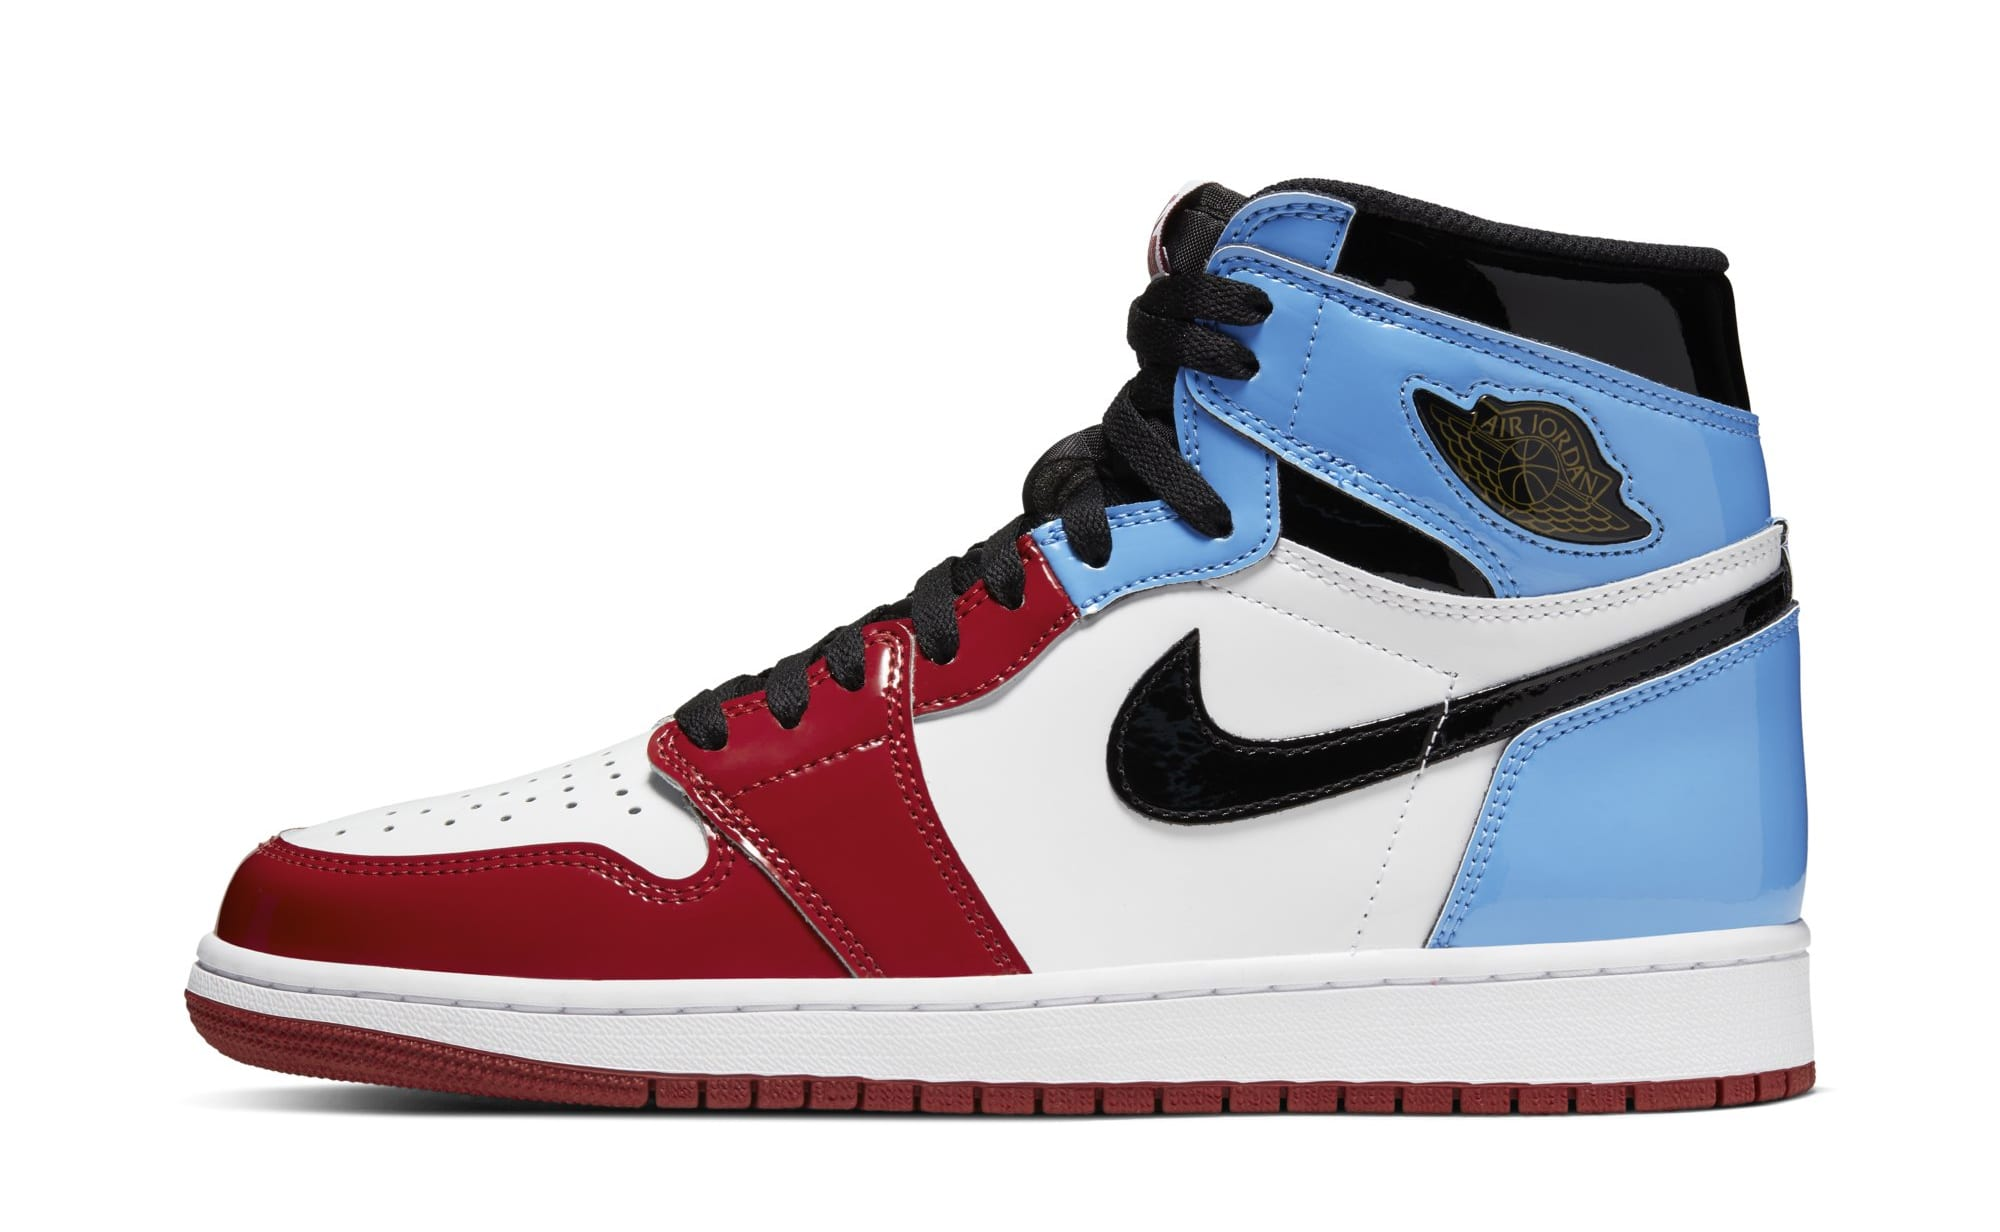 Air Jordan 1 High OG 'Fearless' UNC to Chicago CK5666-100 (Lateral)